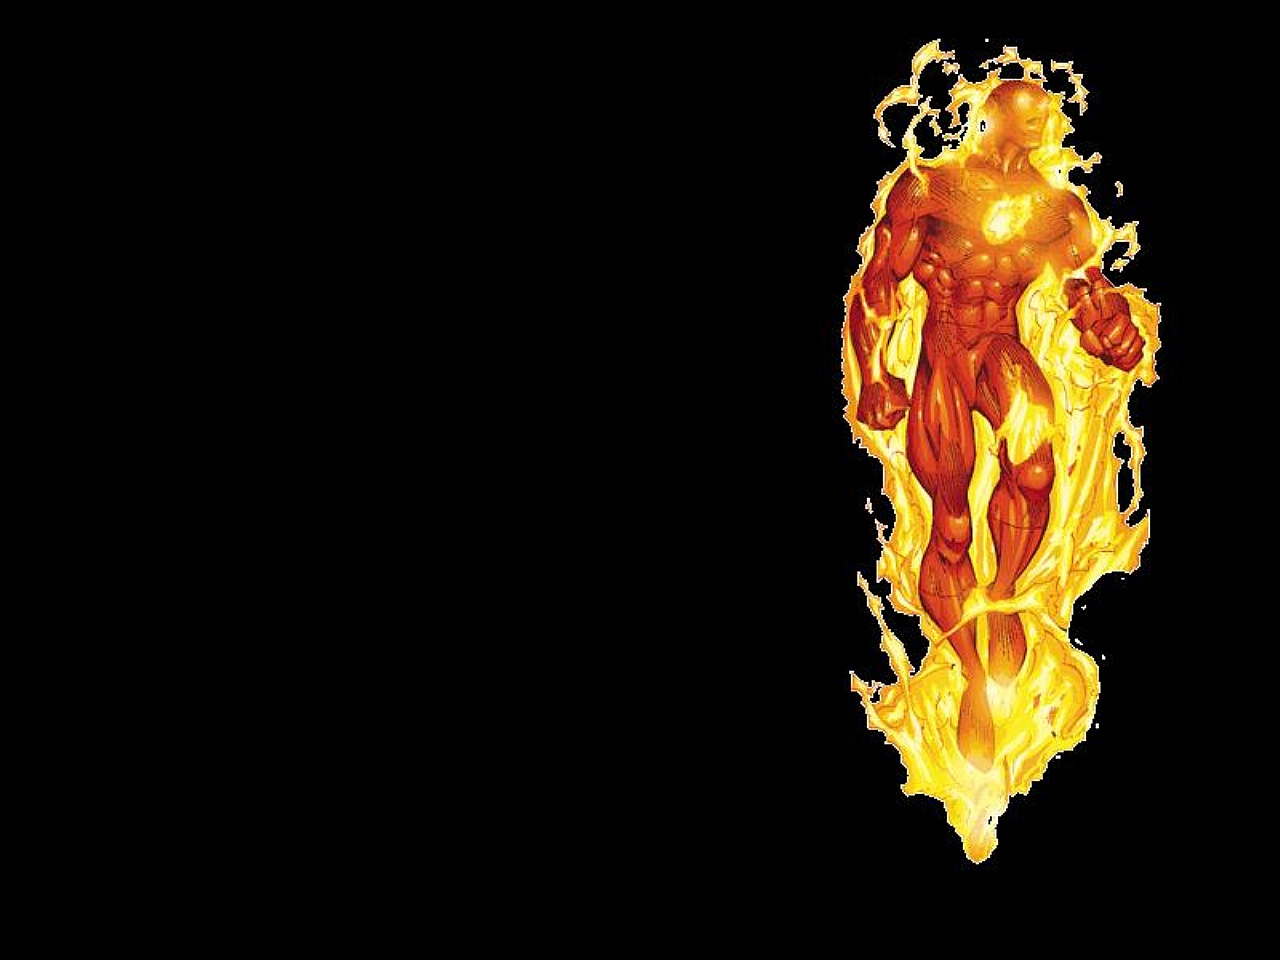 Human Torch Cartoon Photos Cartoon Photo and Wallpaper 1280x960